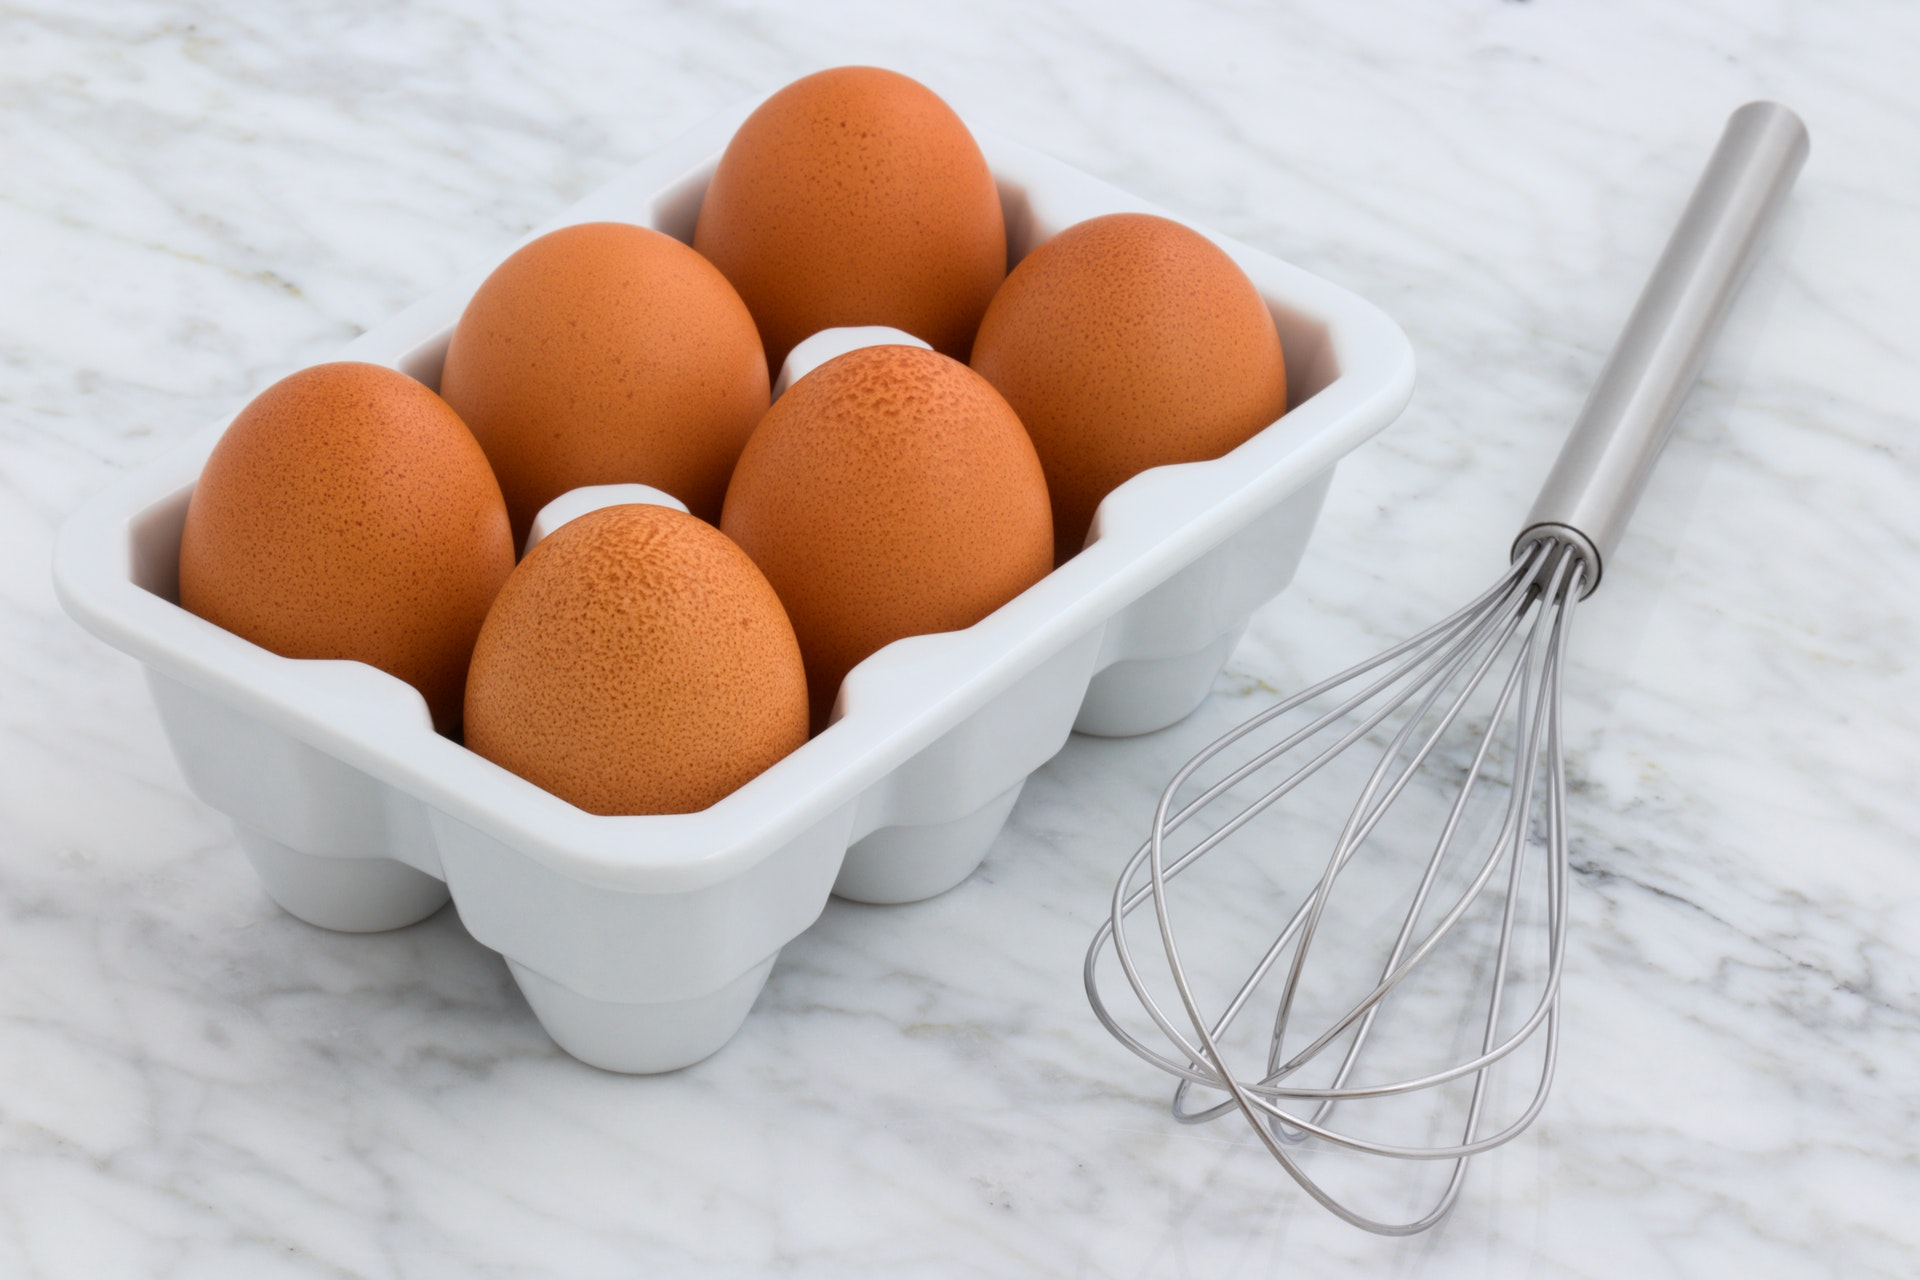 Six Eggs in a Tray